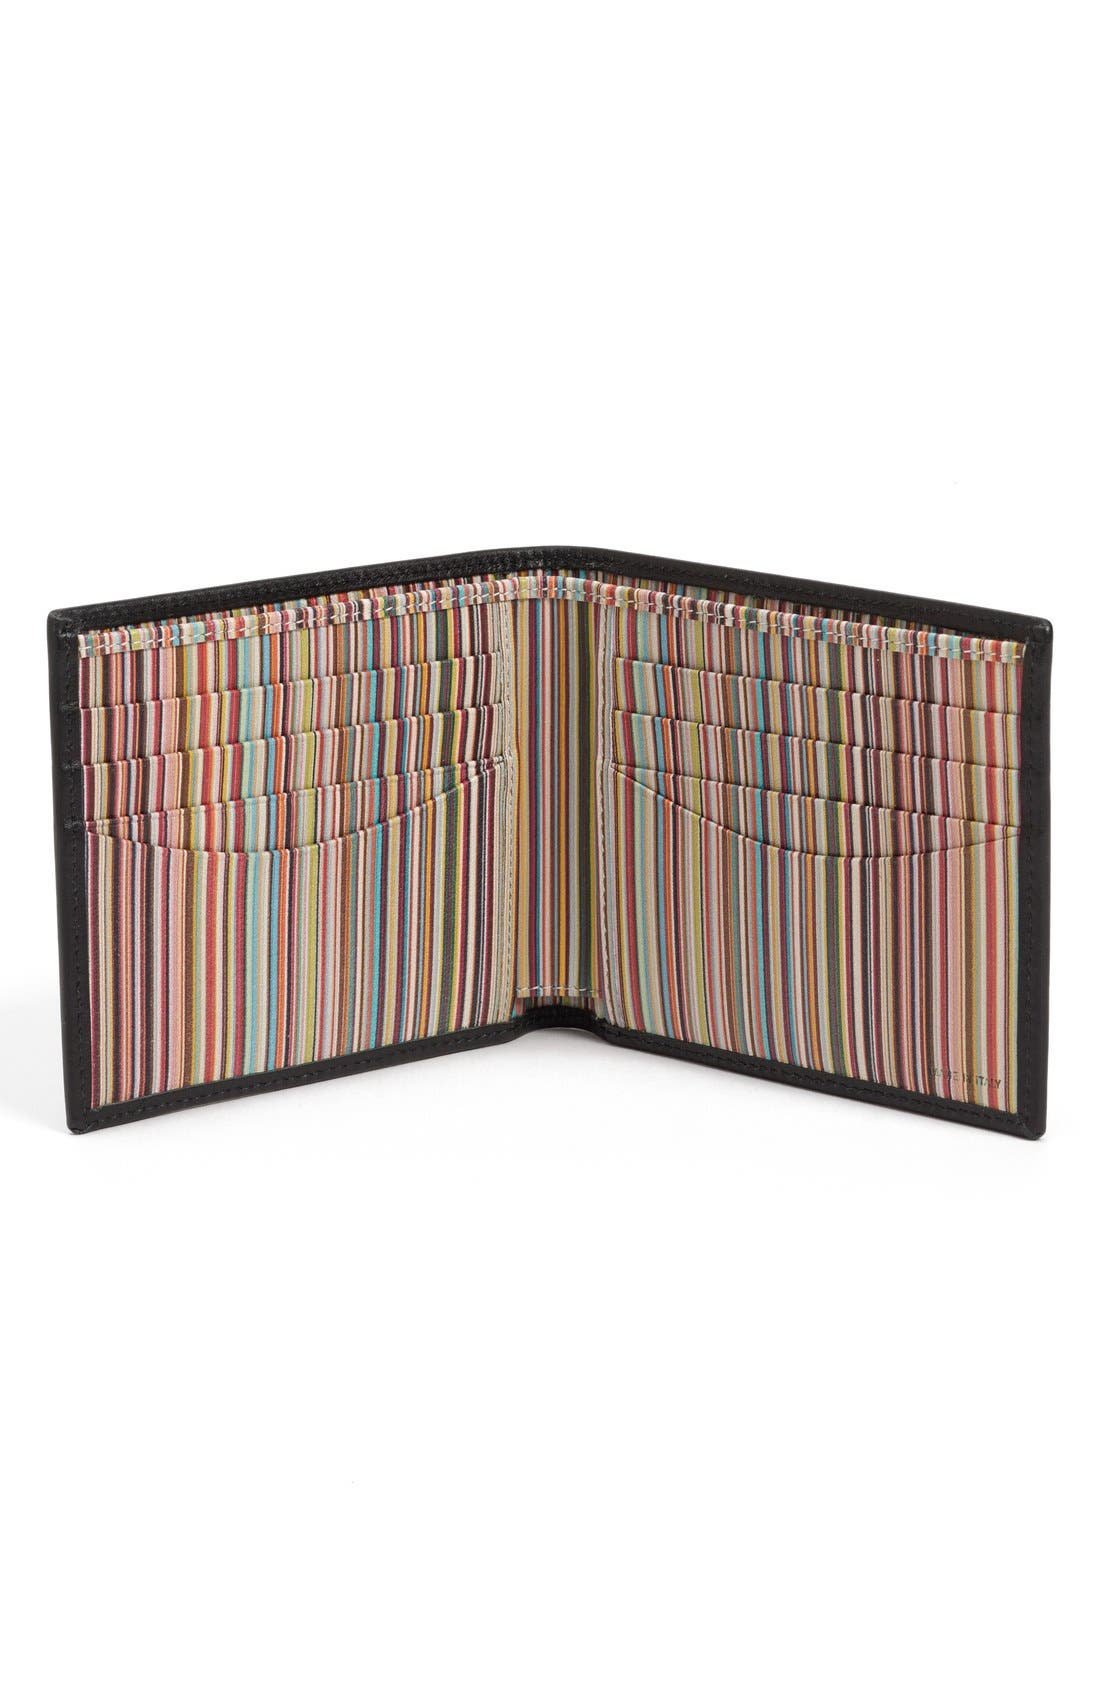 Interior Stripe Leather Billfold,                             Alternate thumbnail 3, color,                             001